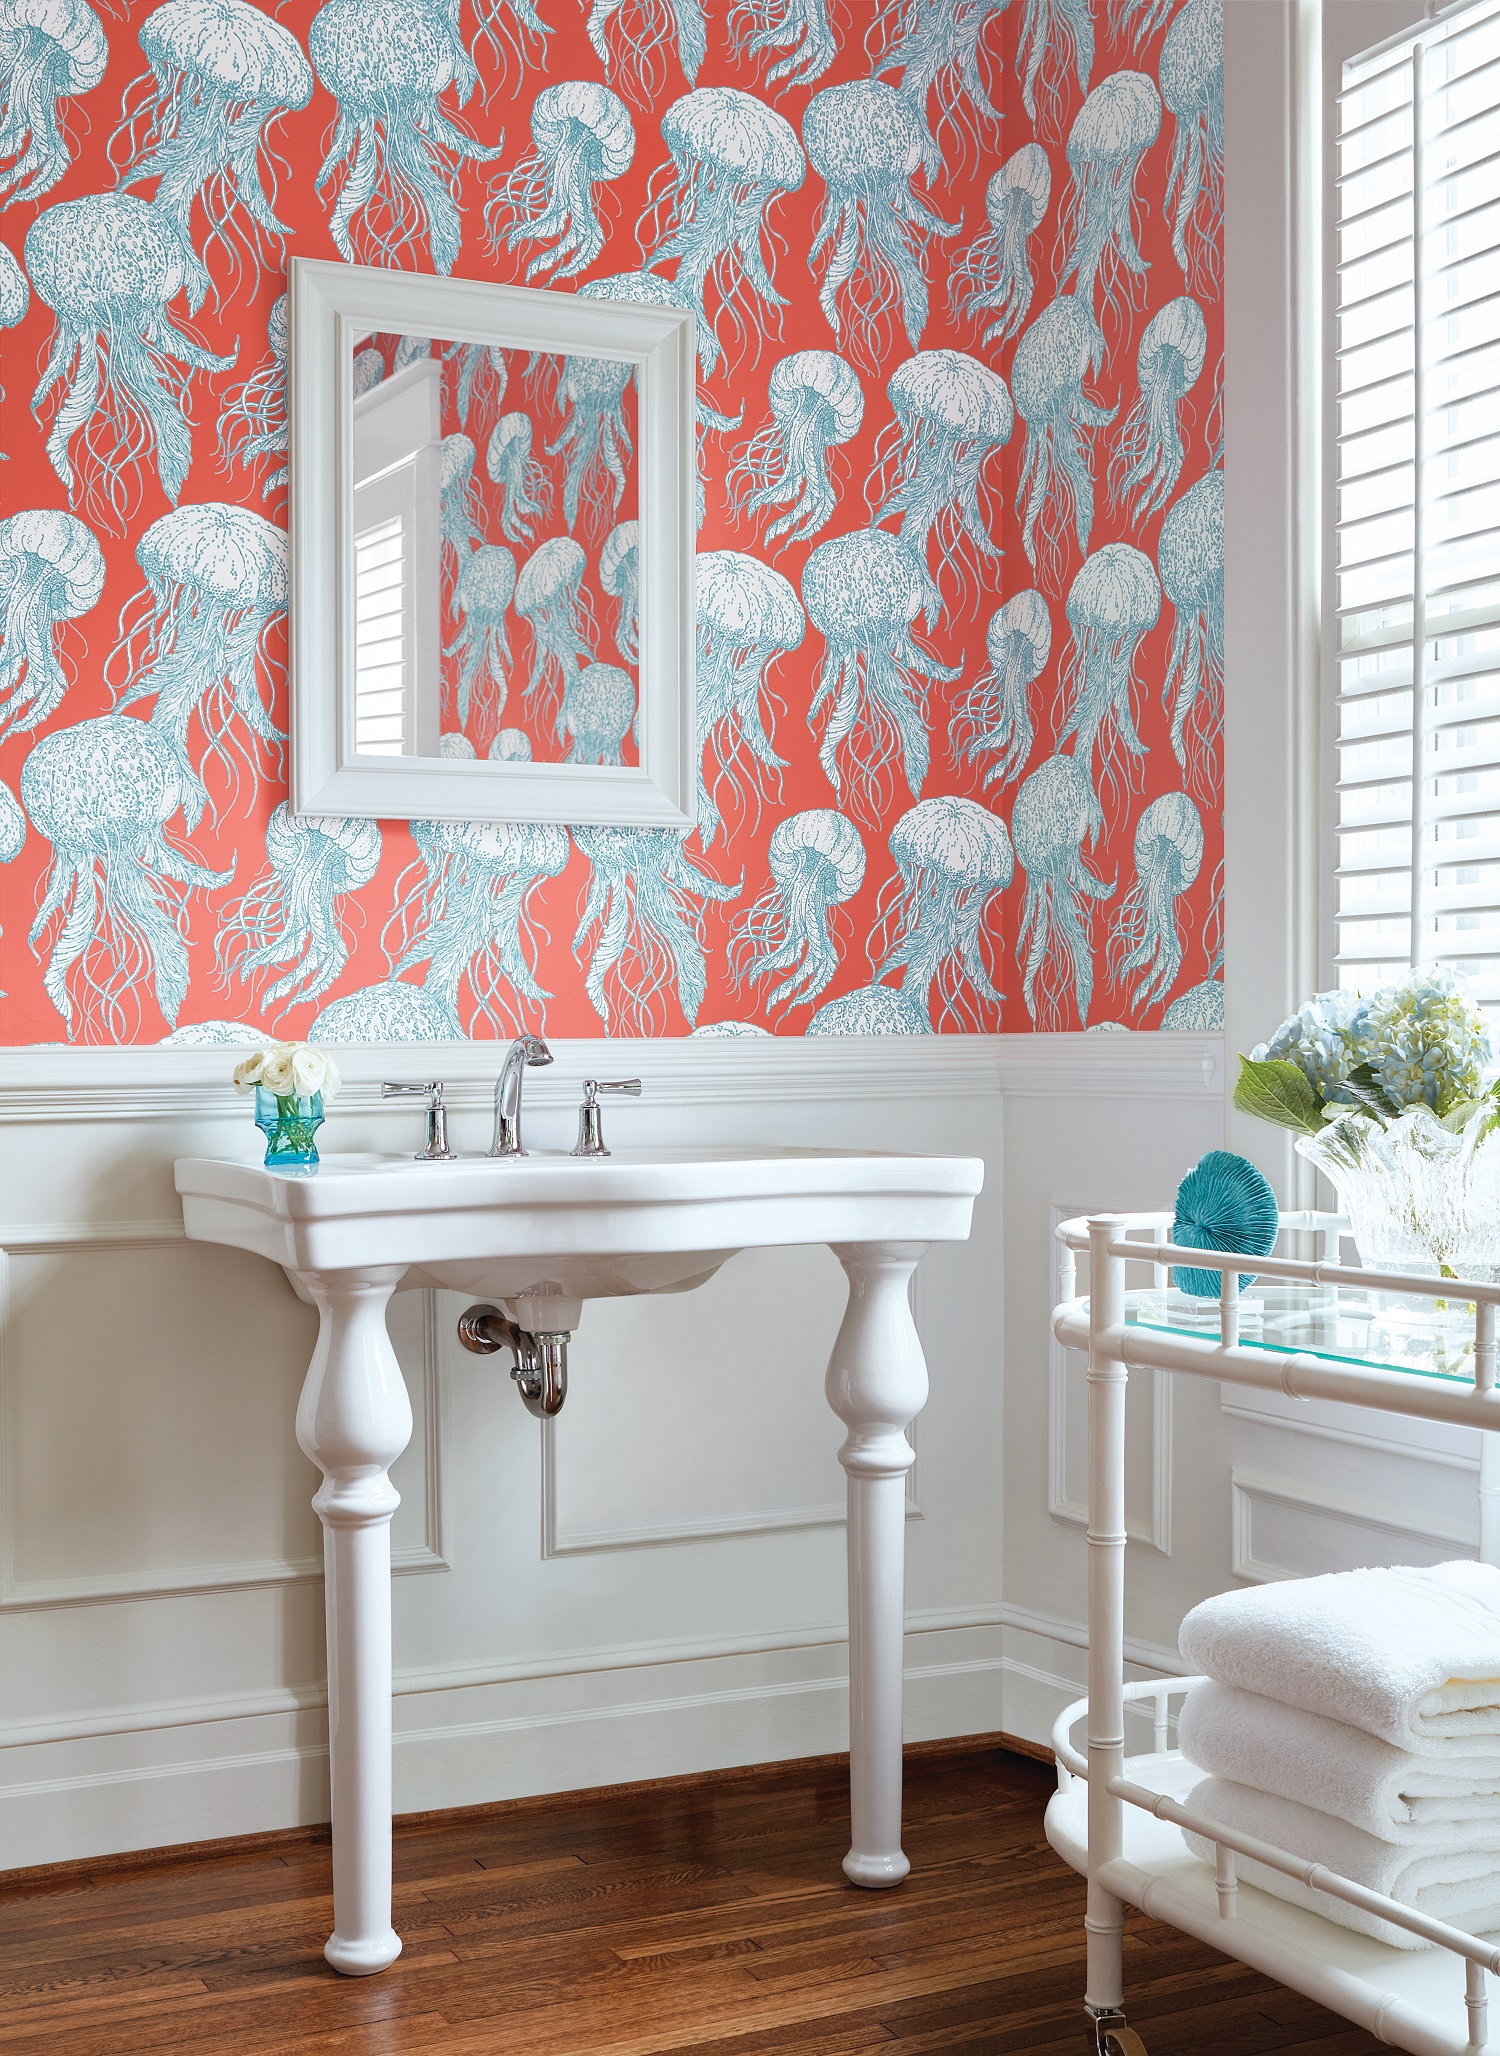 Have some fun this spring with  Jelly Fish Bl oom wall covering from Thibaut Design's Summer House Collection.  Photo courtesy of Thibaut Design.